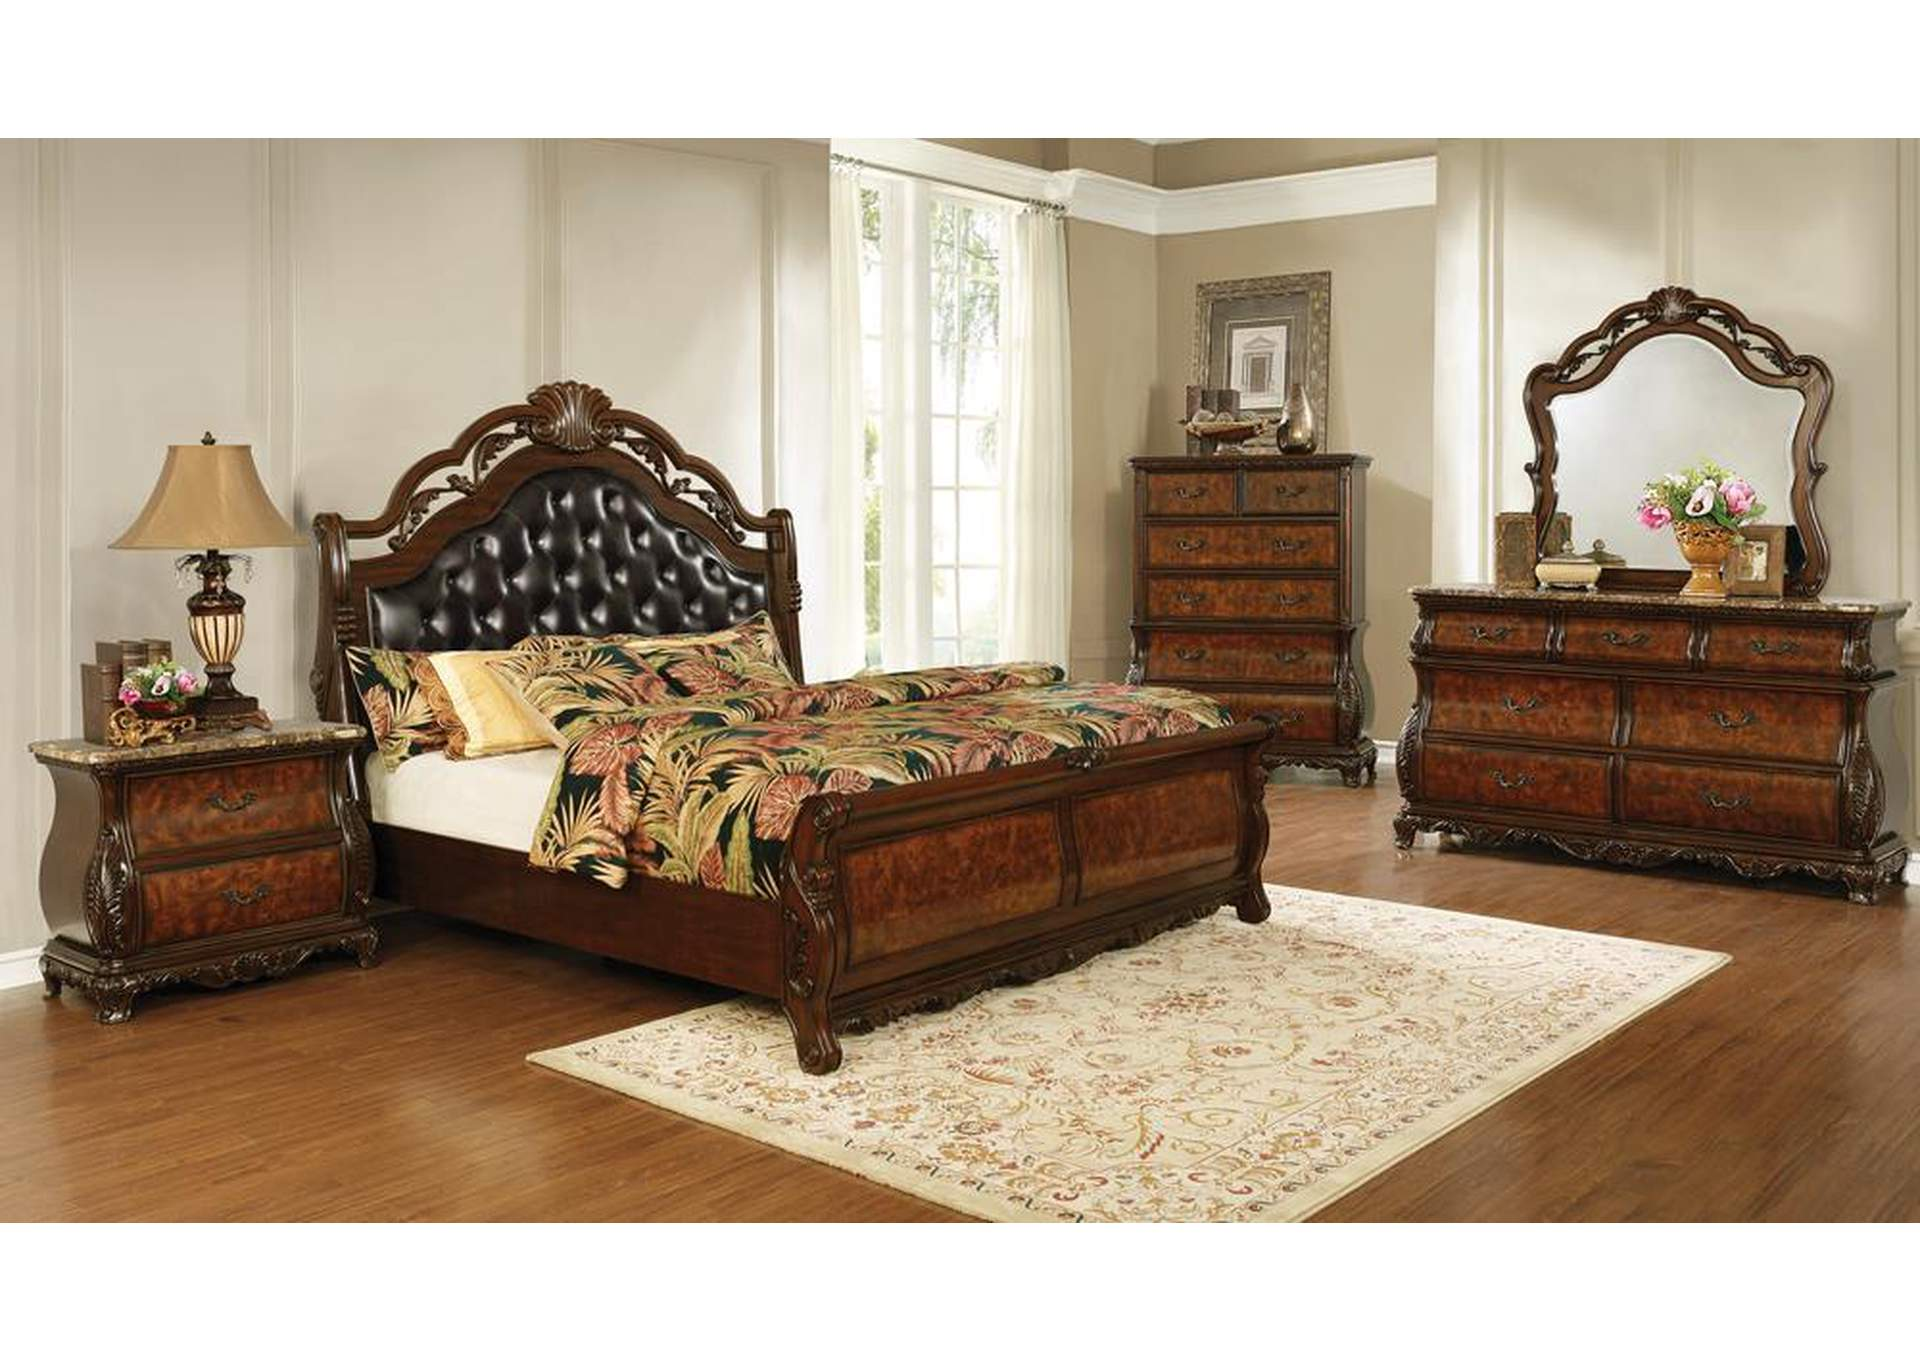 Exeter Soft Amber 5 Piece Eastern King Bedroom Set Bayit Furniture,Vital Proteins Collagen Creamer Review